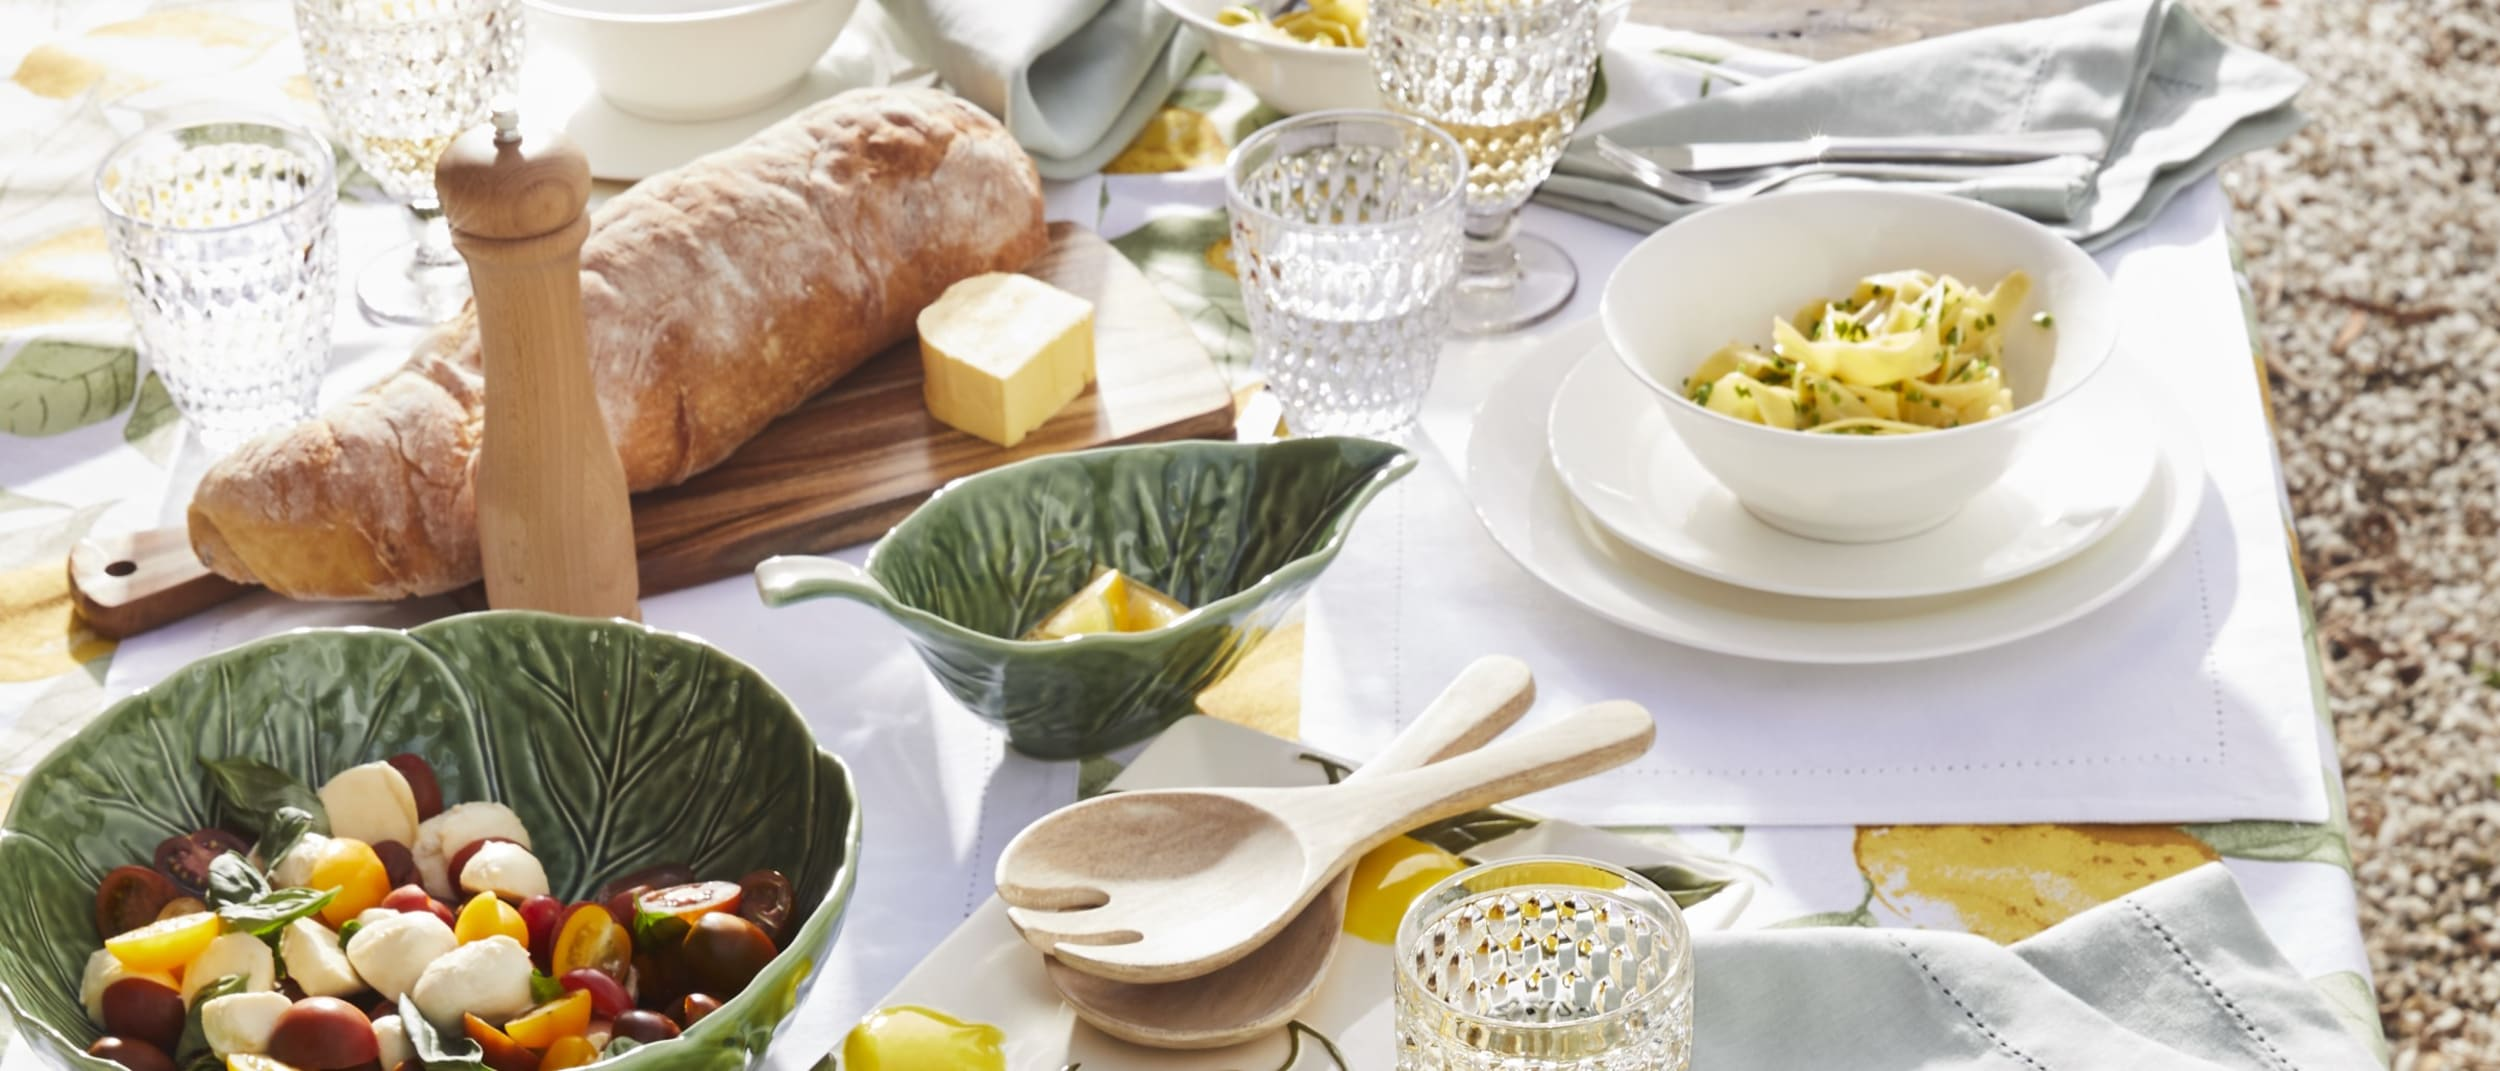 Join us for the major launch of Myers Homewares Department